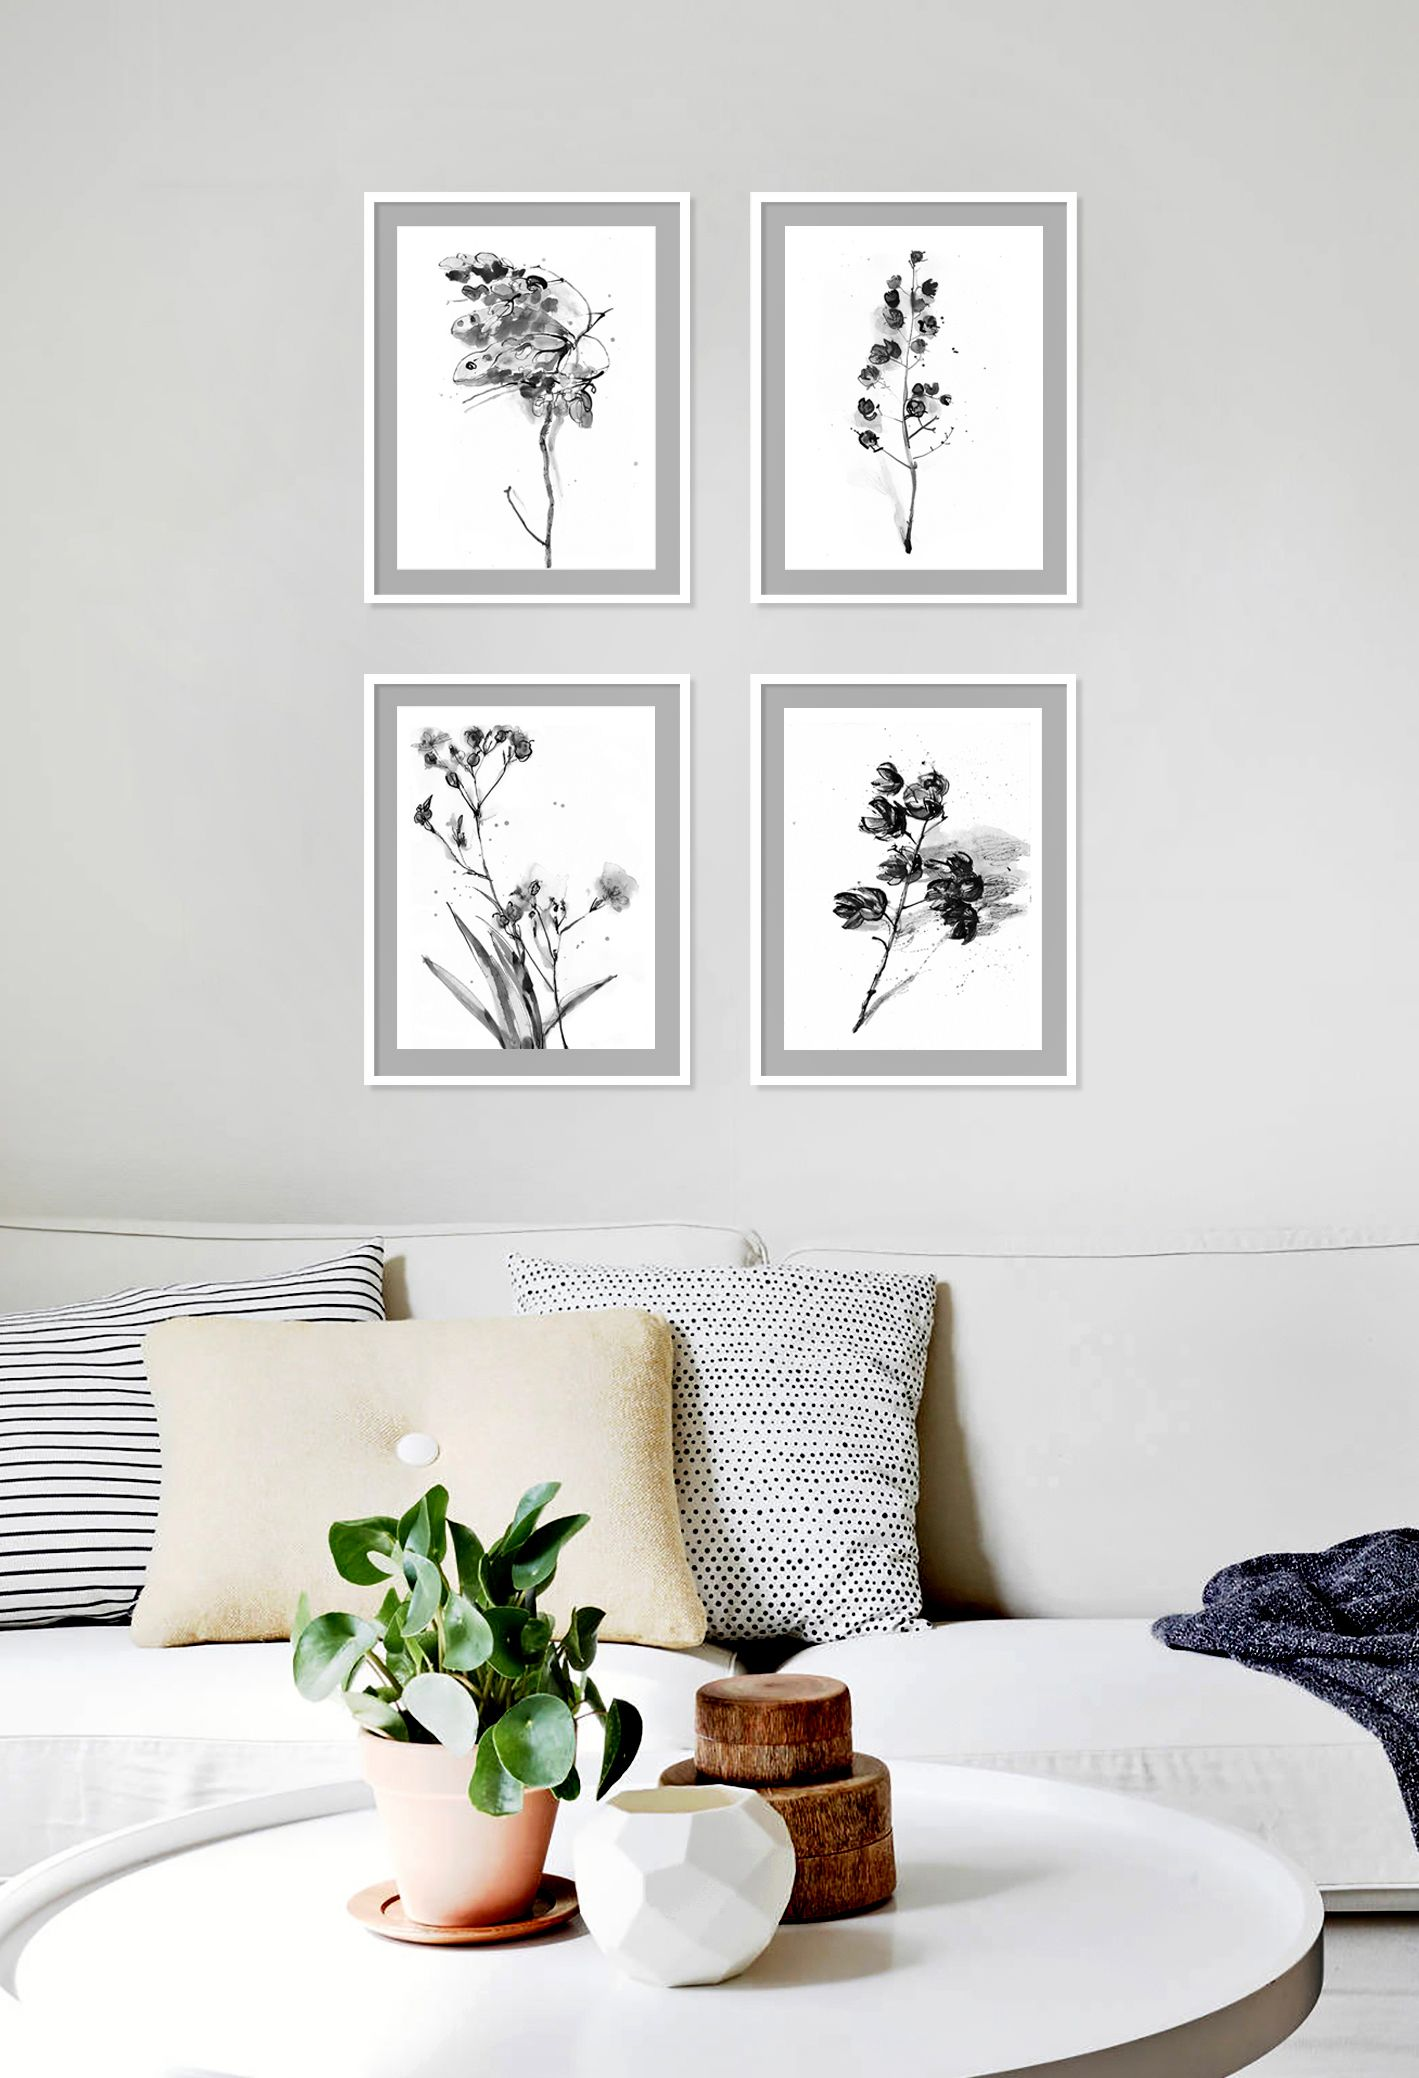 Floral Black And White Art Print Minimalist Set Of 4 Botanical Illustrations Gray Abstract Botanical Wall Art Floral Bw Wall Decor Botanical Wall Art Wall Decor Minimalist Wall Art